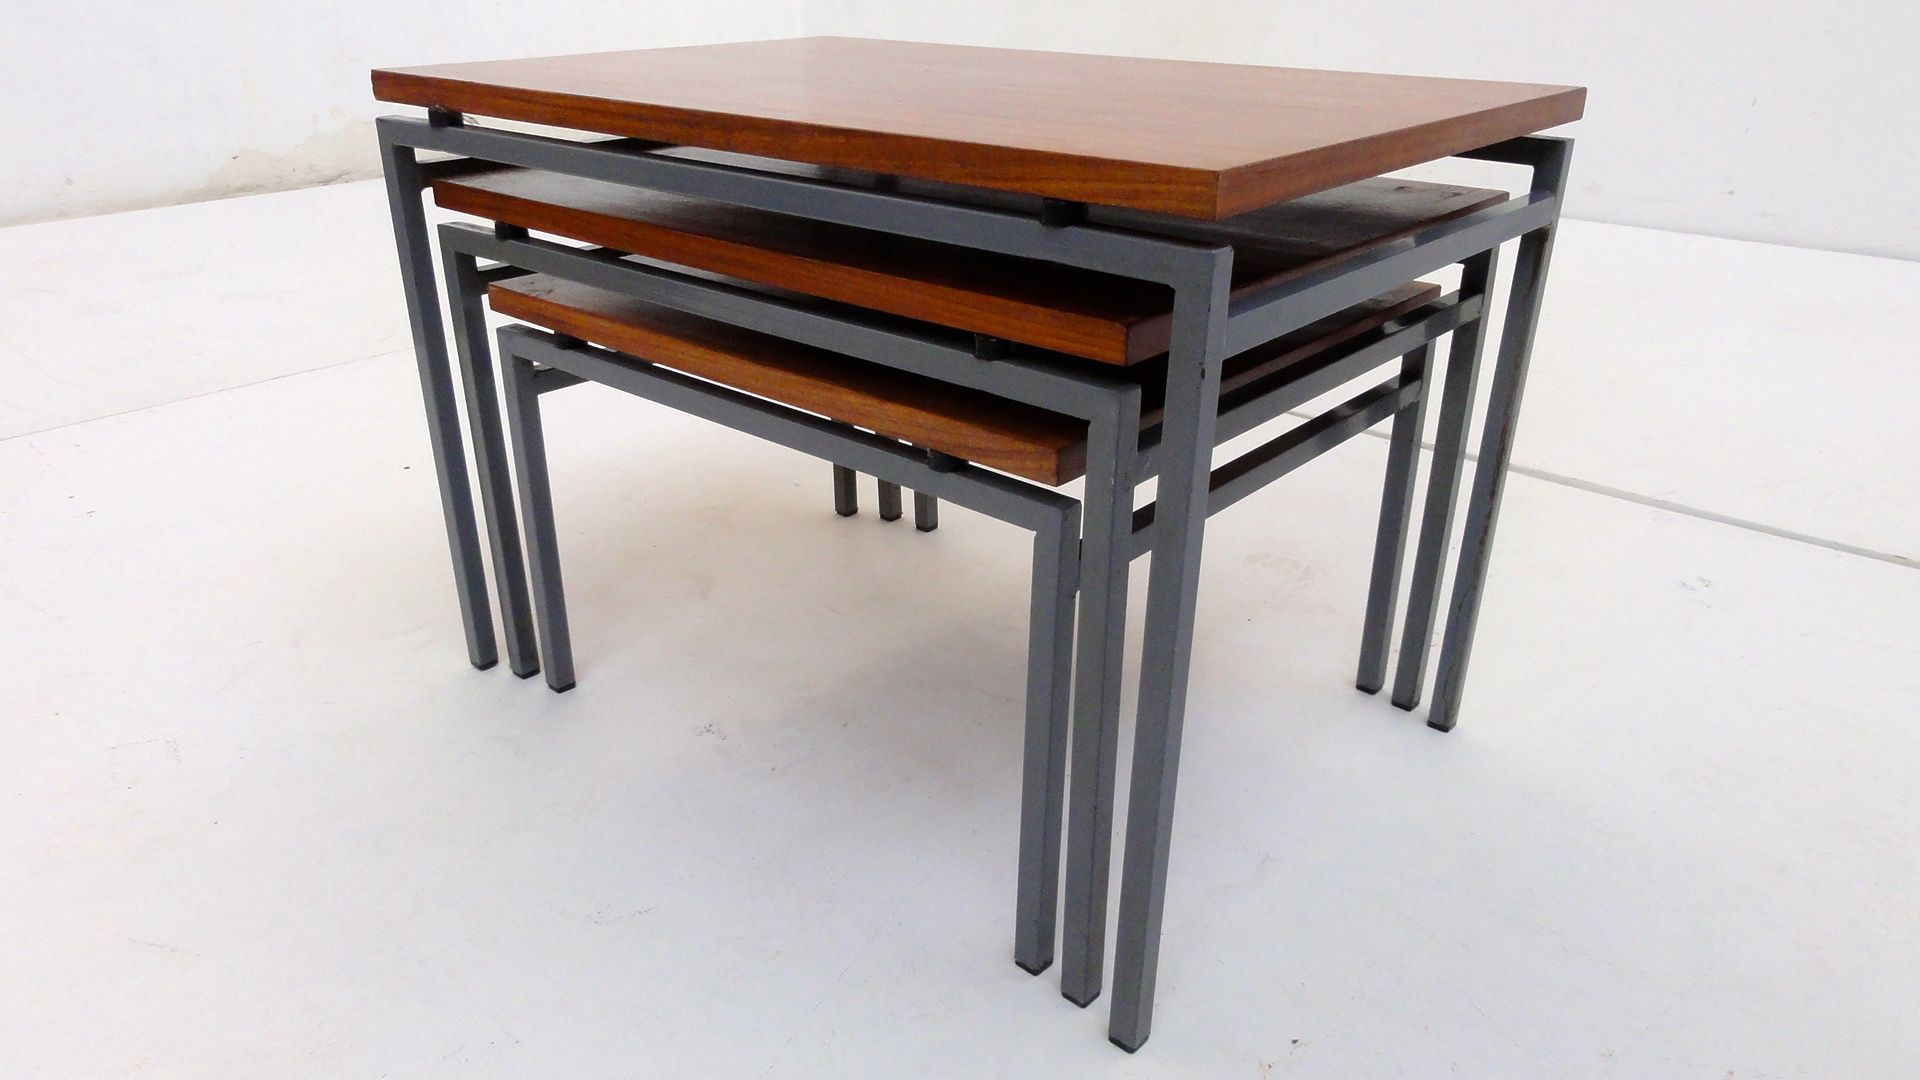 Wonderful image of Dutch Nesting Tables from Pastoe 1960s Set of 3 for sale at Pamono with #6E3316 color and 1920x1080 pixels